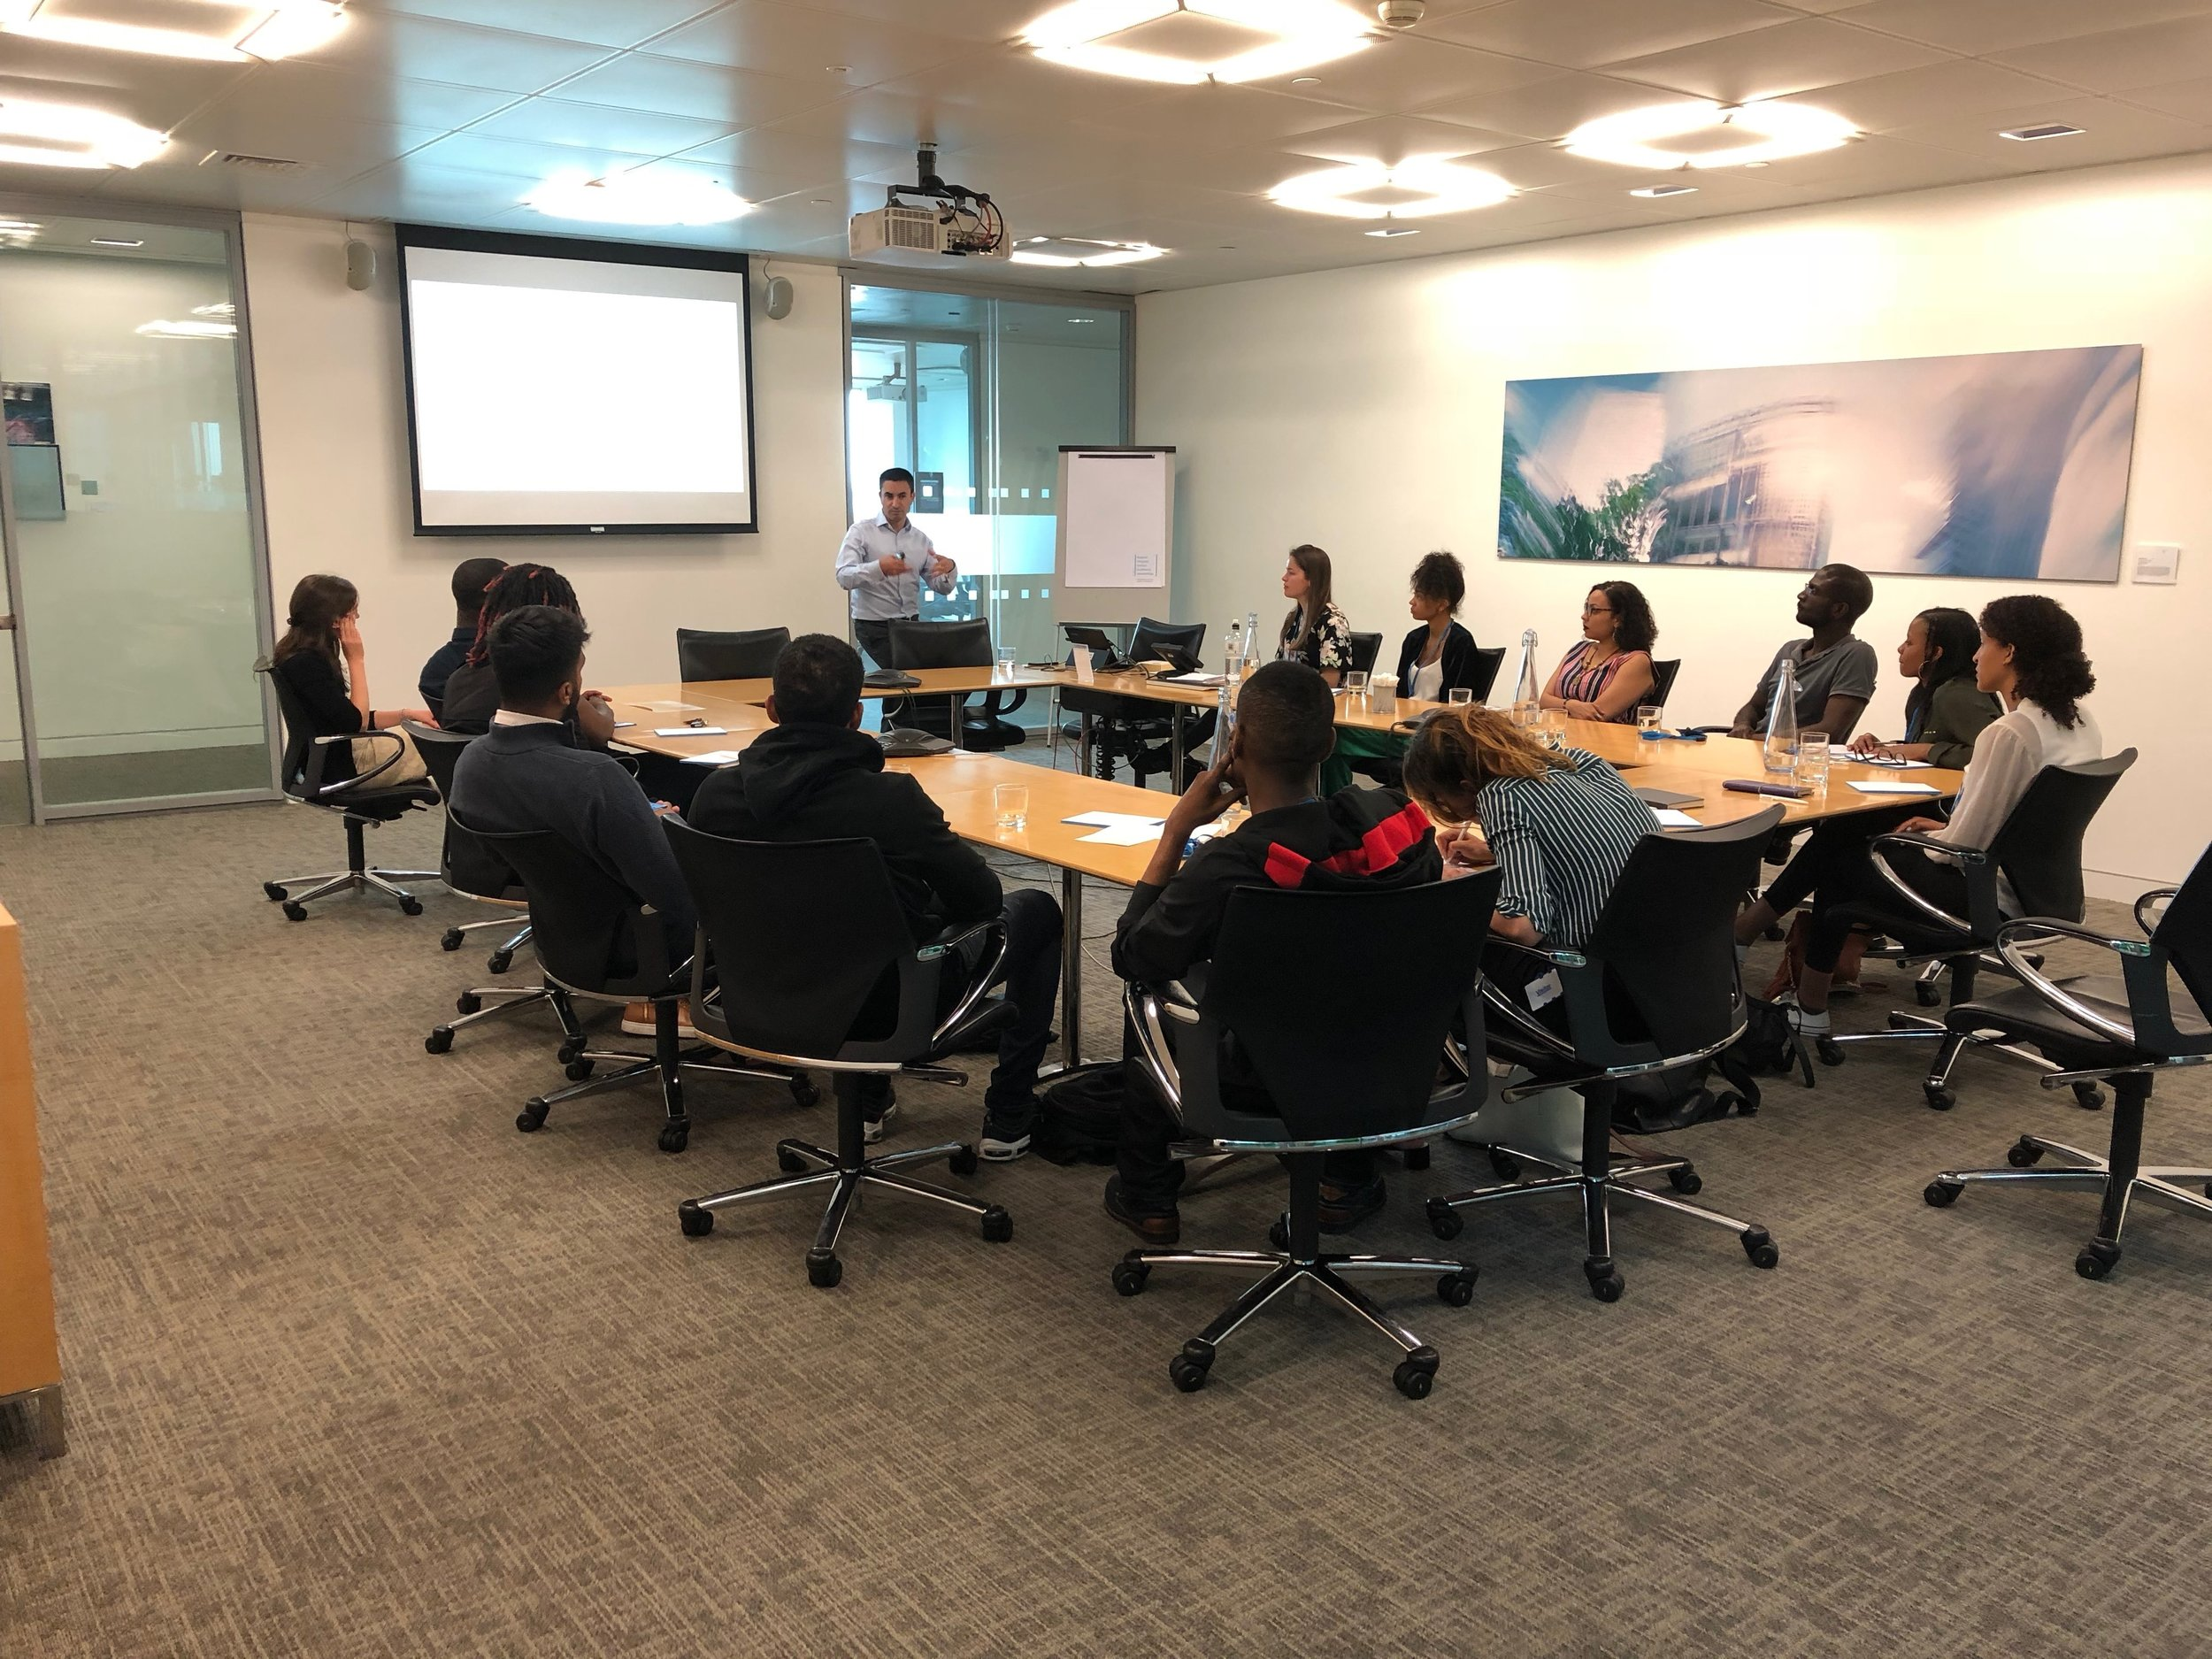 Great workshop hosted by Barclays in Canary Wharf